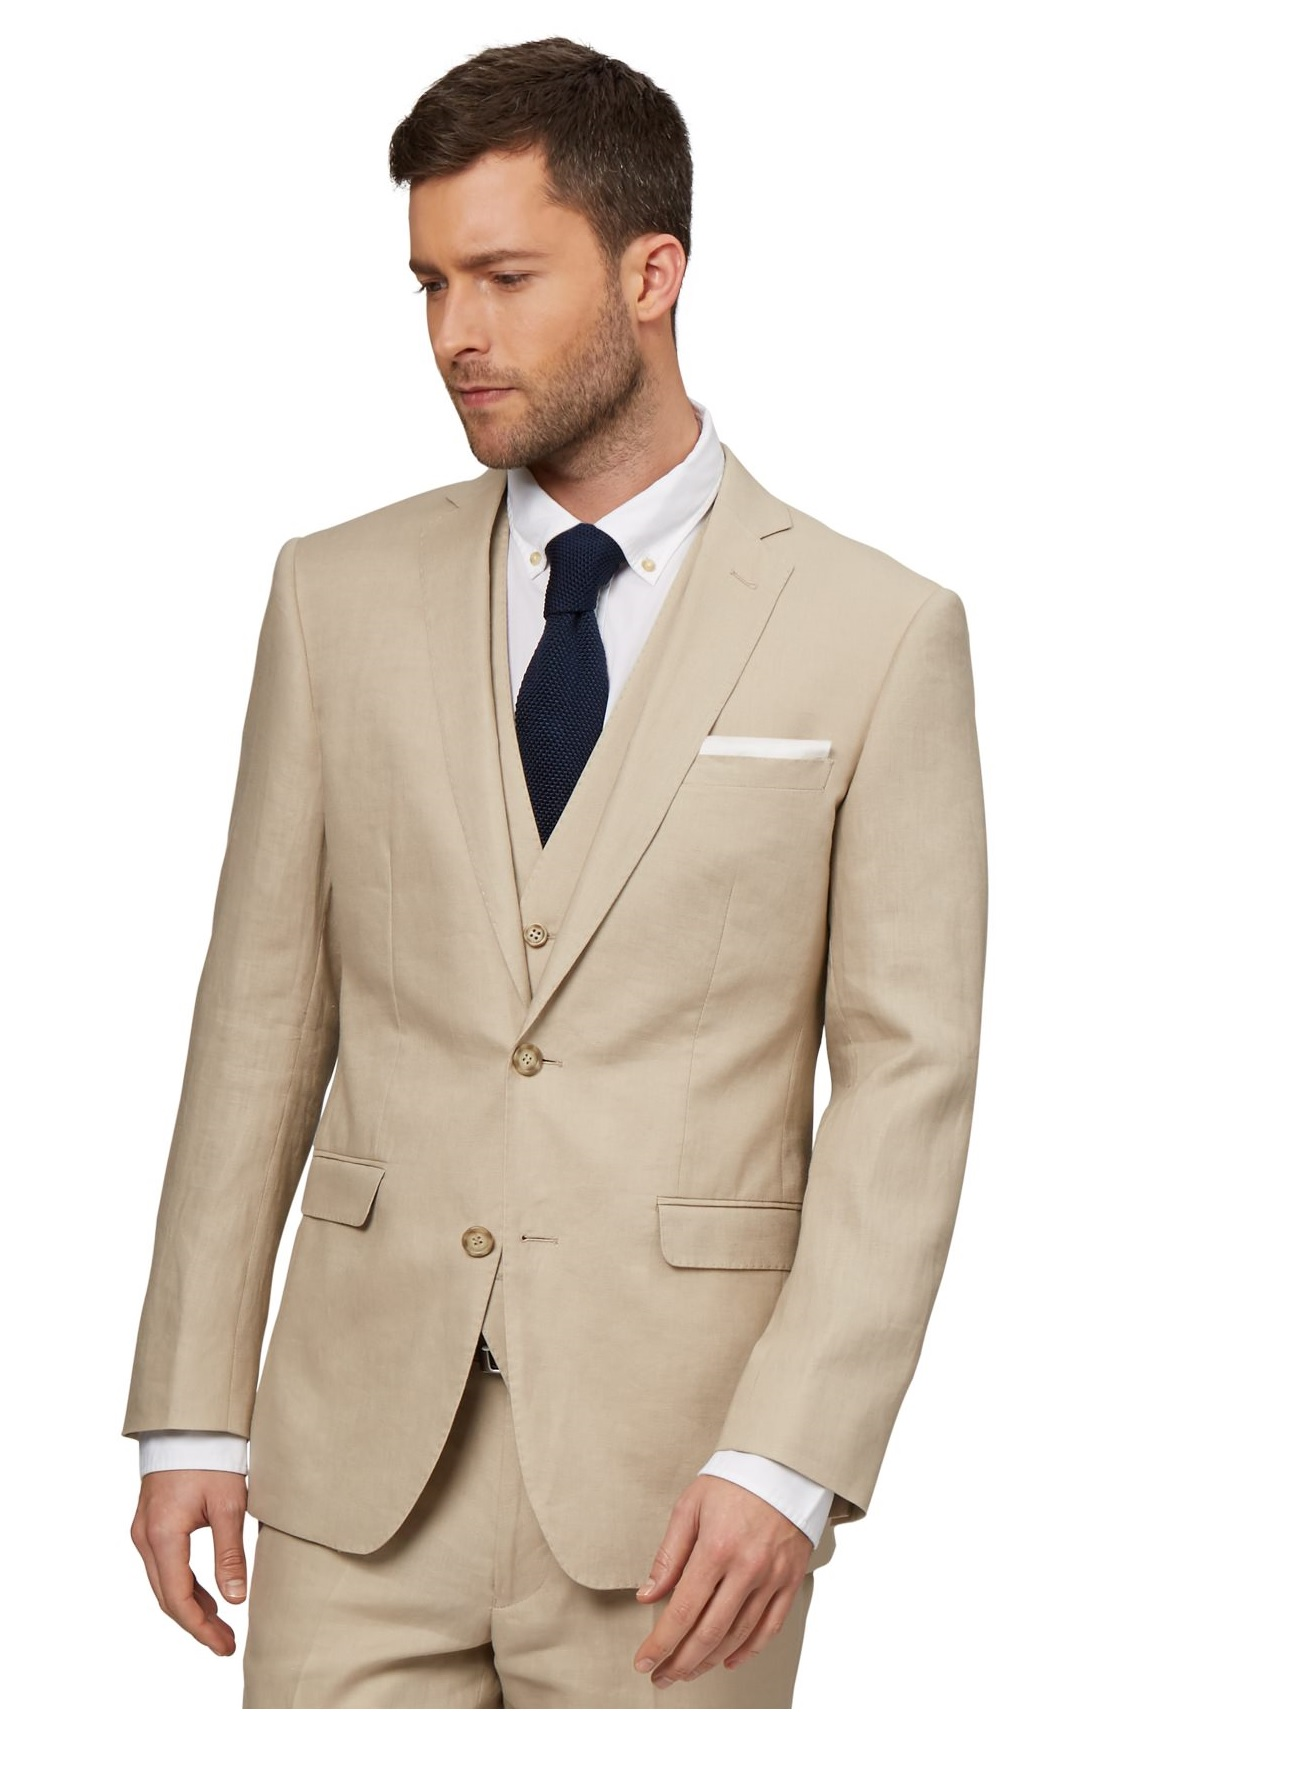 Beige Suit Jacket | My Dress Tip